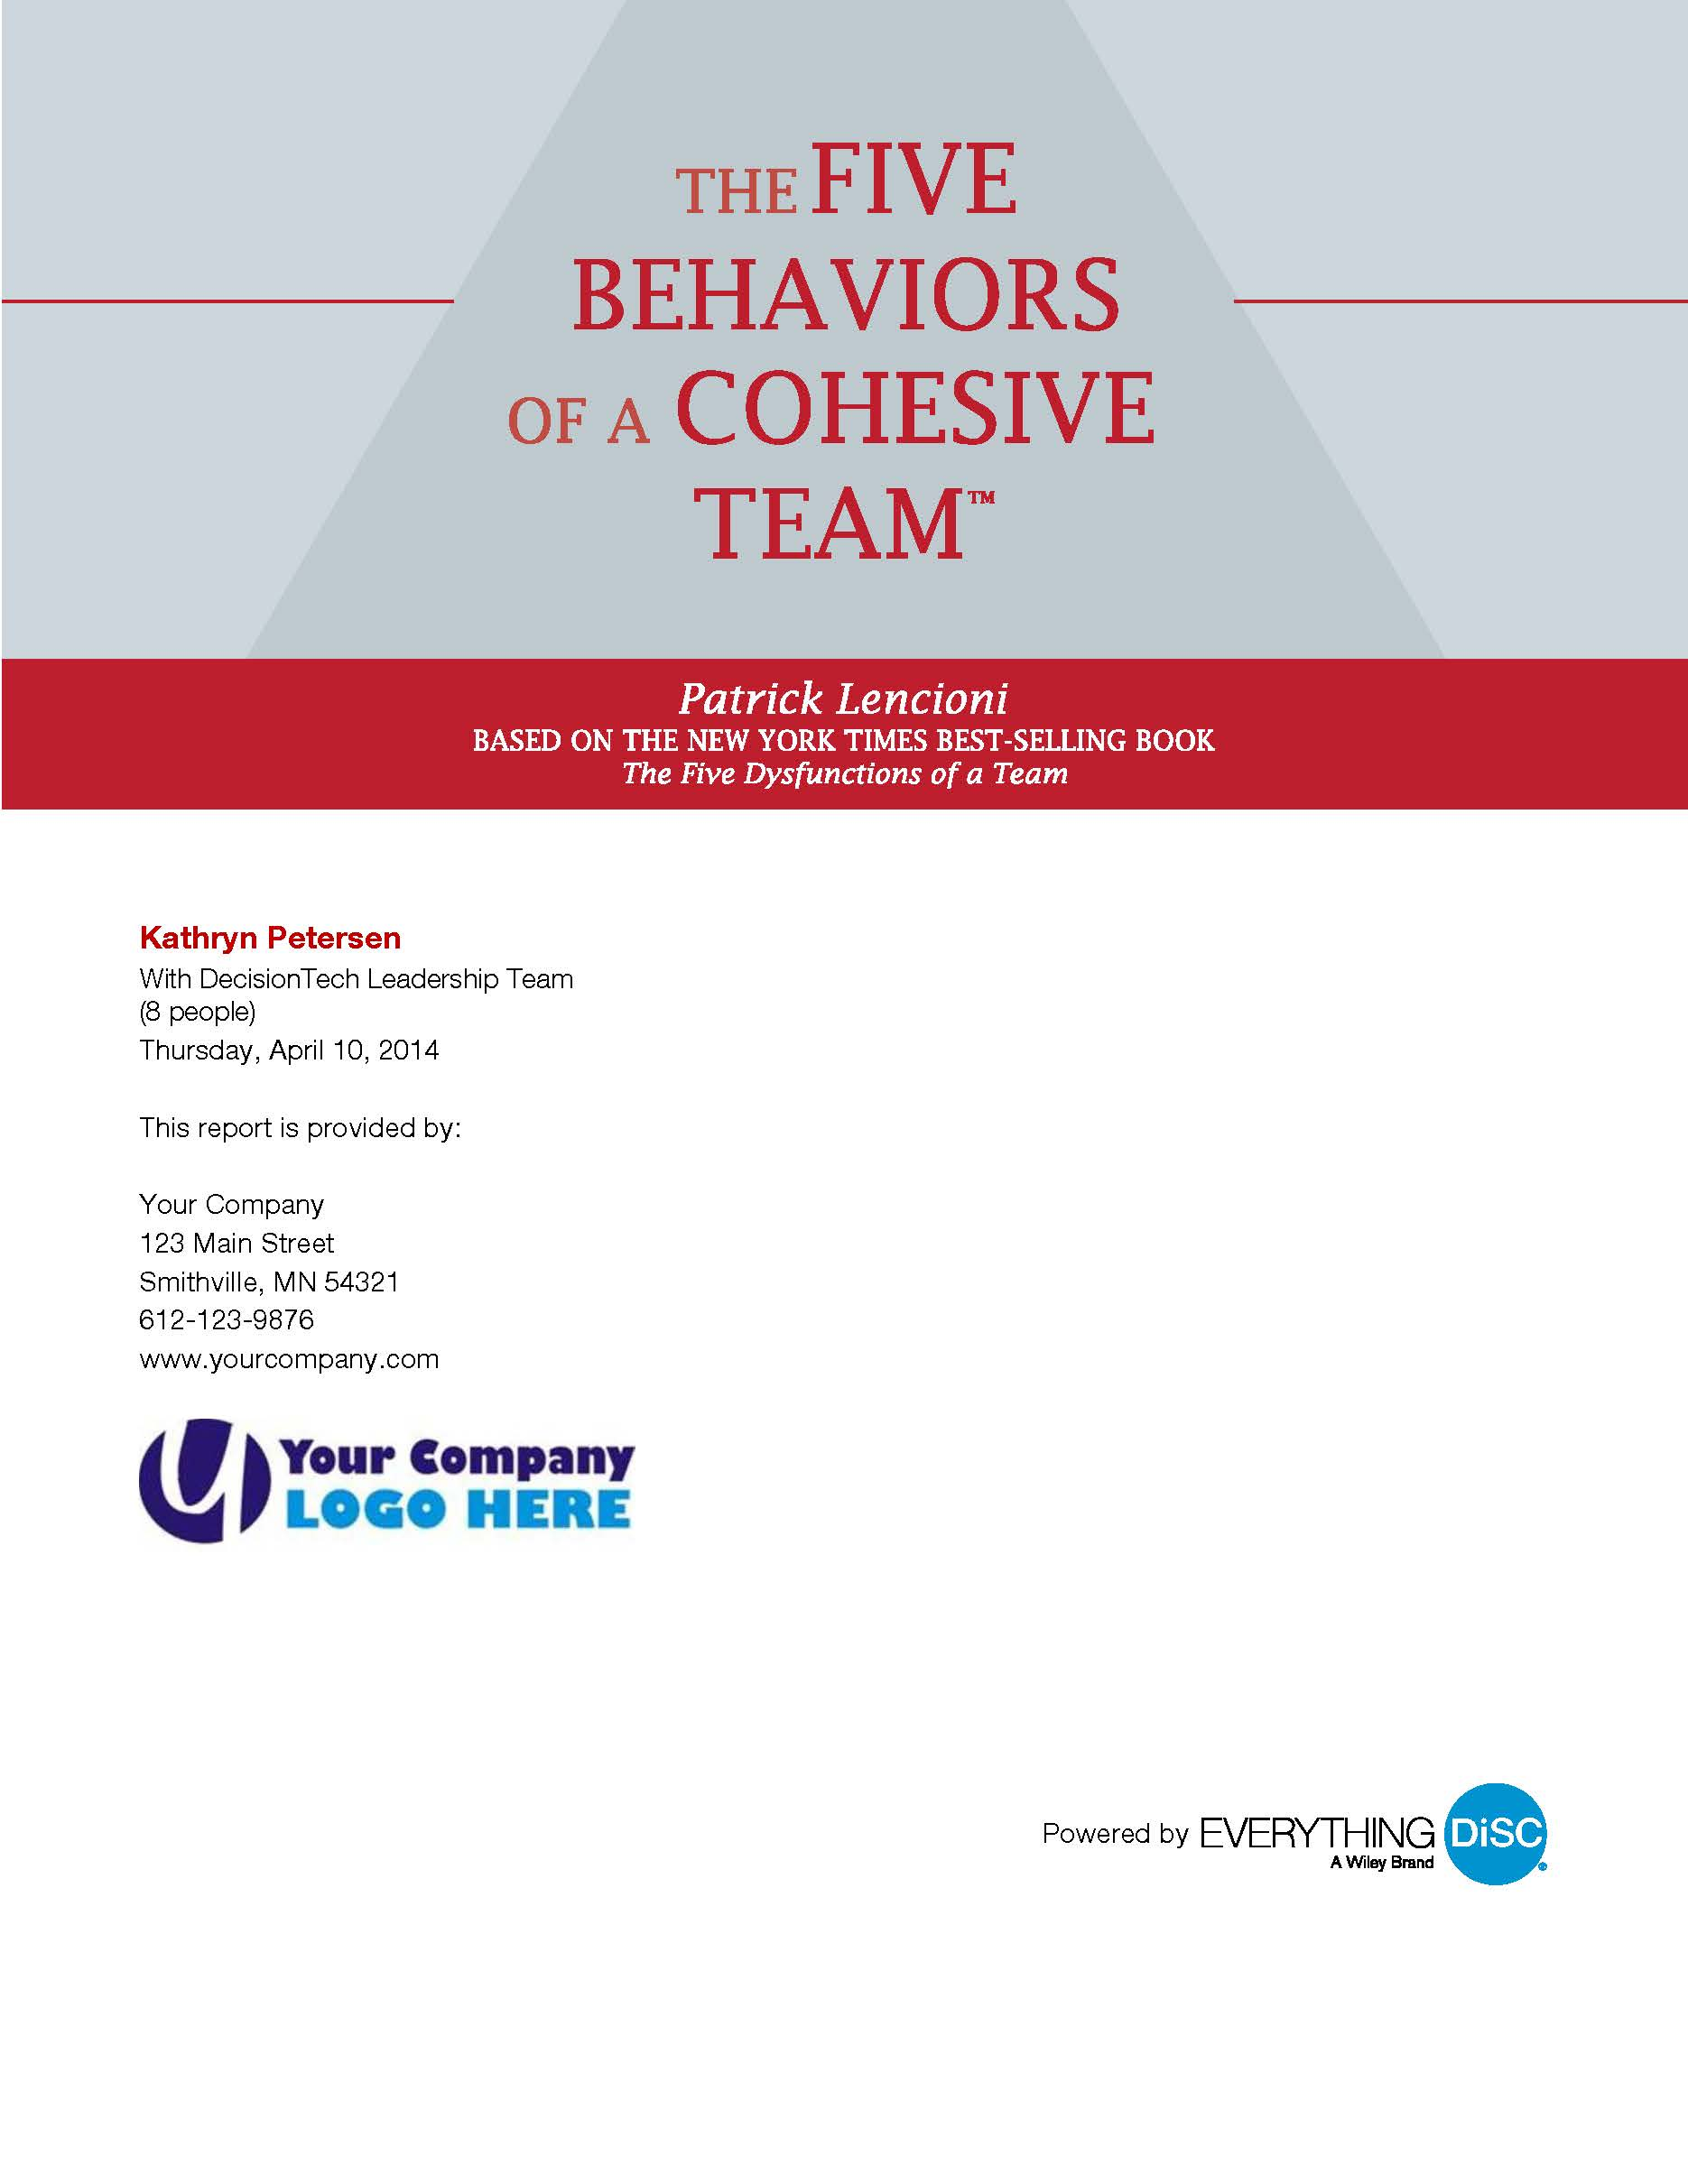 The Five Behaviors of a Cohesive Team&#153  Assessment (Everything DiSC®)